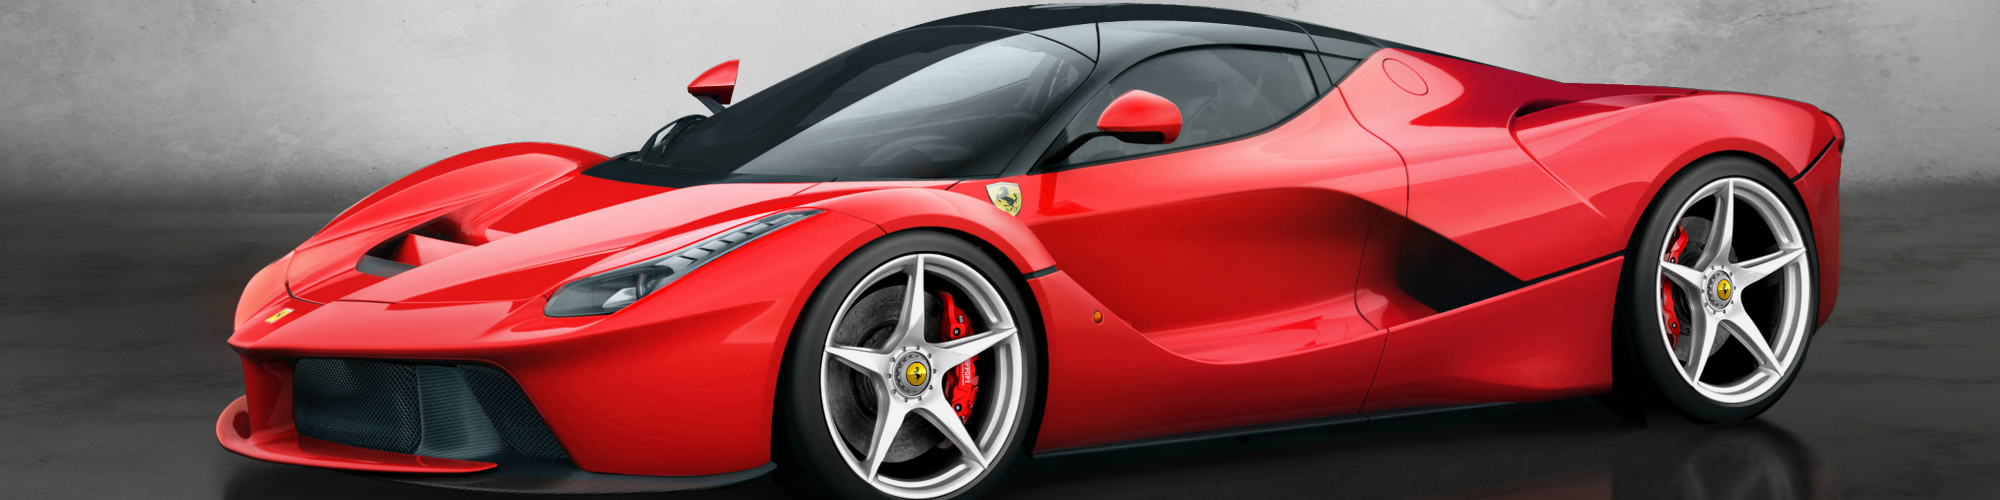 ​Ferrari's LaFerrari carries on the legacy of the Enzo Ferrari that came before it. It shares the same wheelbase as the Enzo and like its predecessor, is generally considered to be a larger car. The LaFerrari sits longer and wider than most other cars in its class, such as the McLaren P1 and the Porsche 918 and is actually taller than both of them as well as the Enzo Ferrari. Who then would complain that this exotic hybrid supercar wasn't big enough for them? That person would be none other than The Rock, and we aren't going to argue with him.